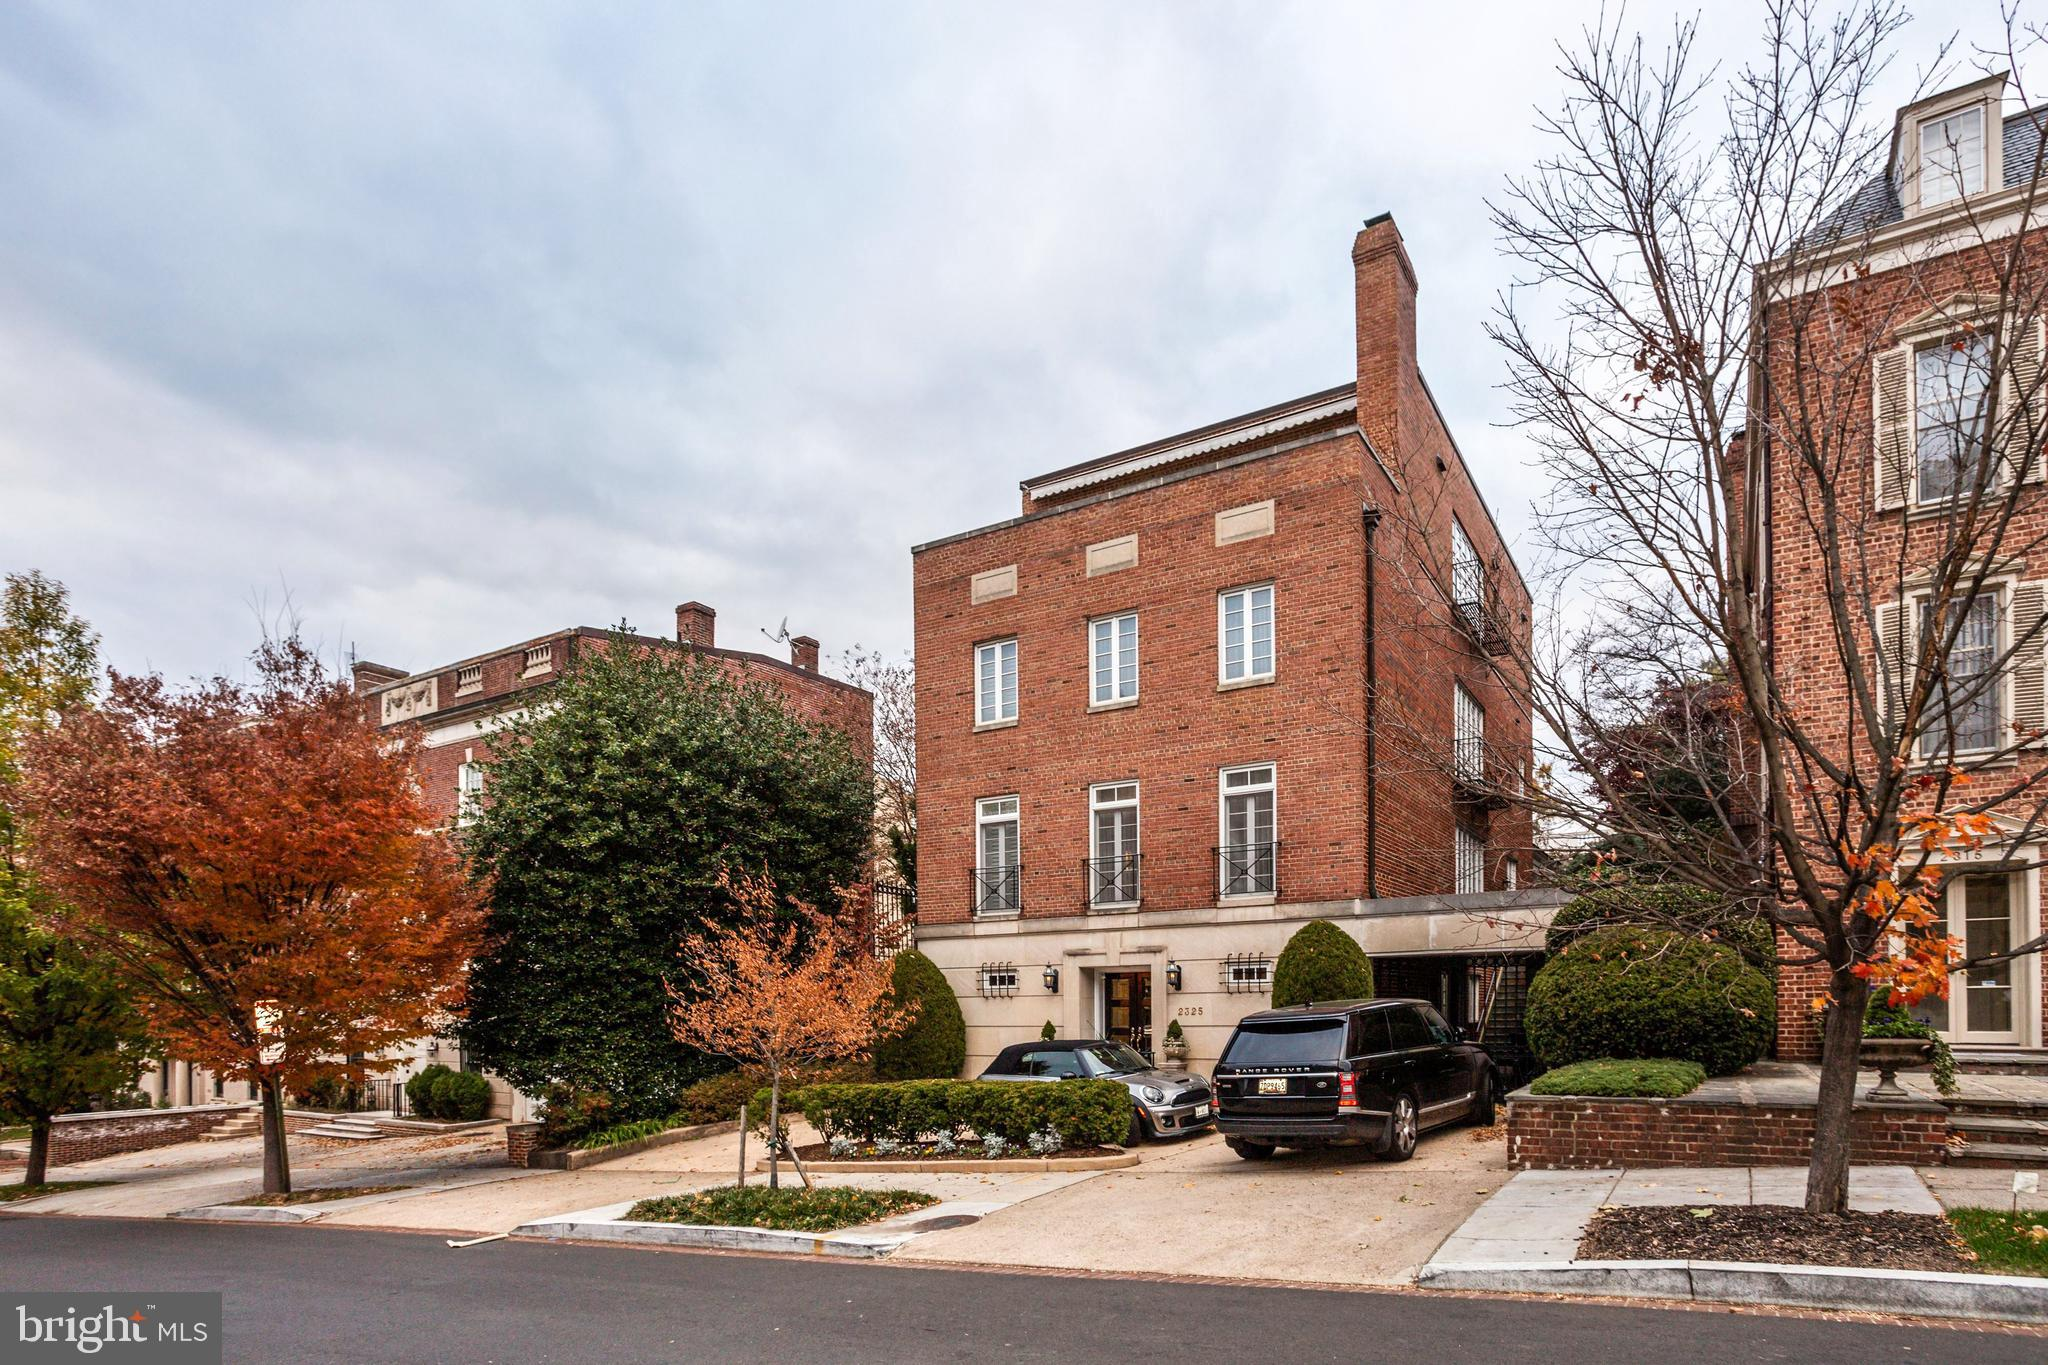 Kalorama ranks as one of the finest neighborhoods in America with diplomatic and historic residences